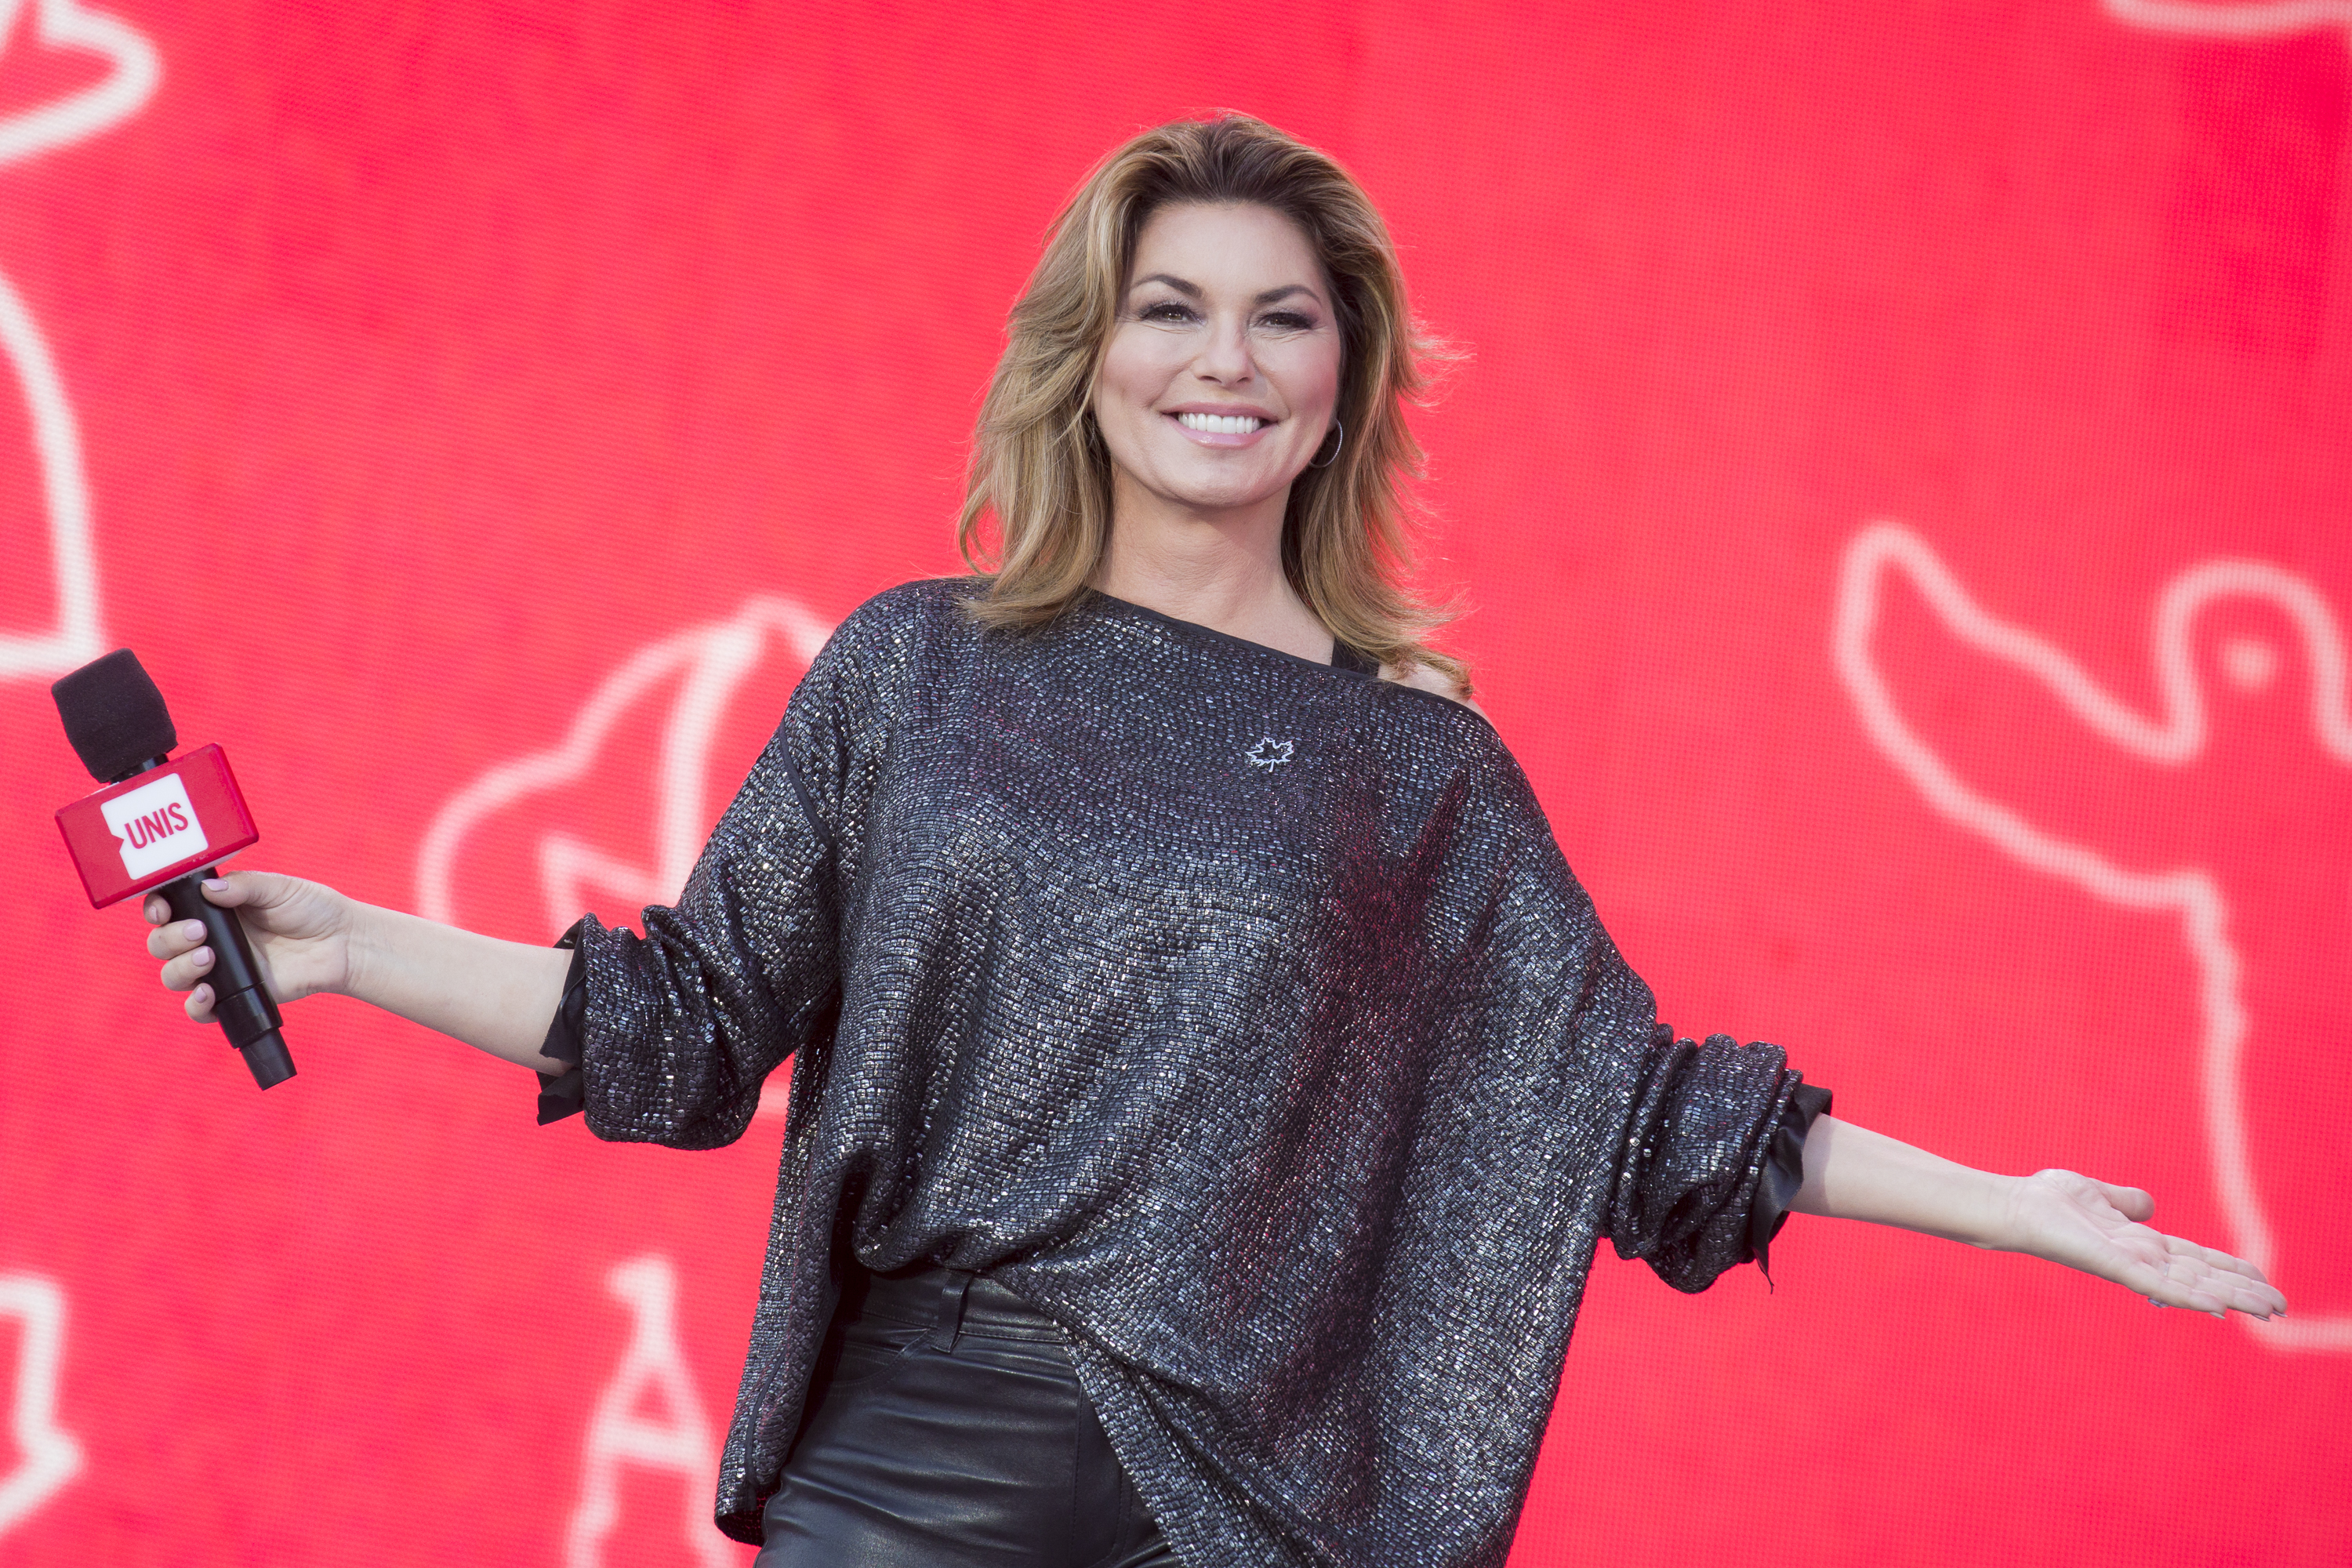 Shania Twain's Son Eja is a Big Fan of 'Life's About to Get Good'